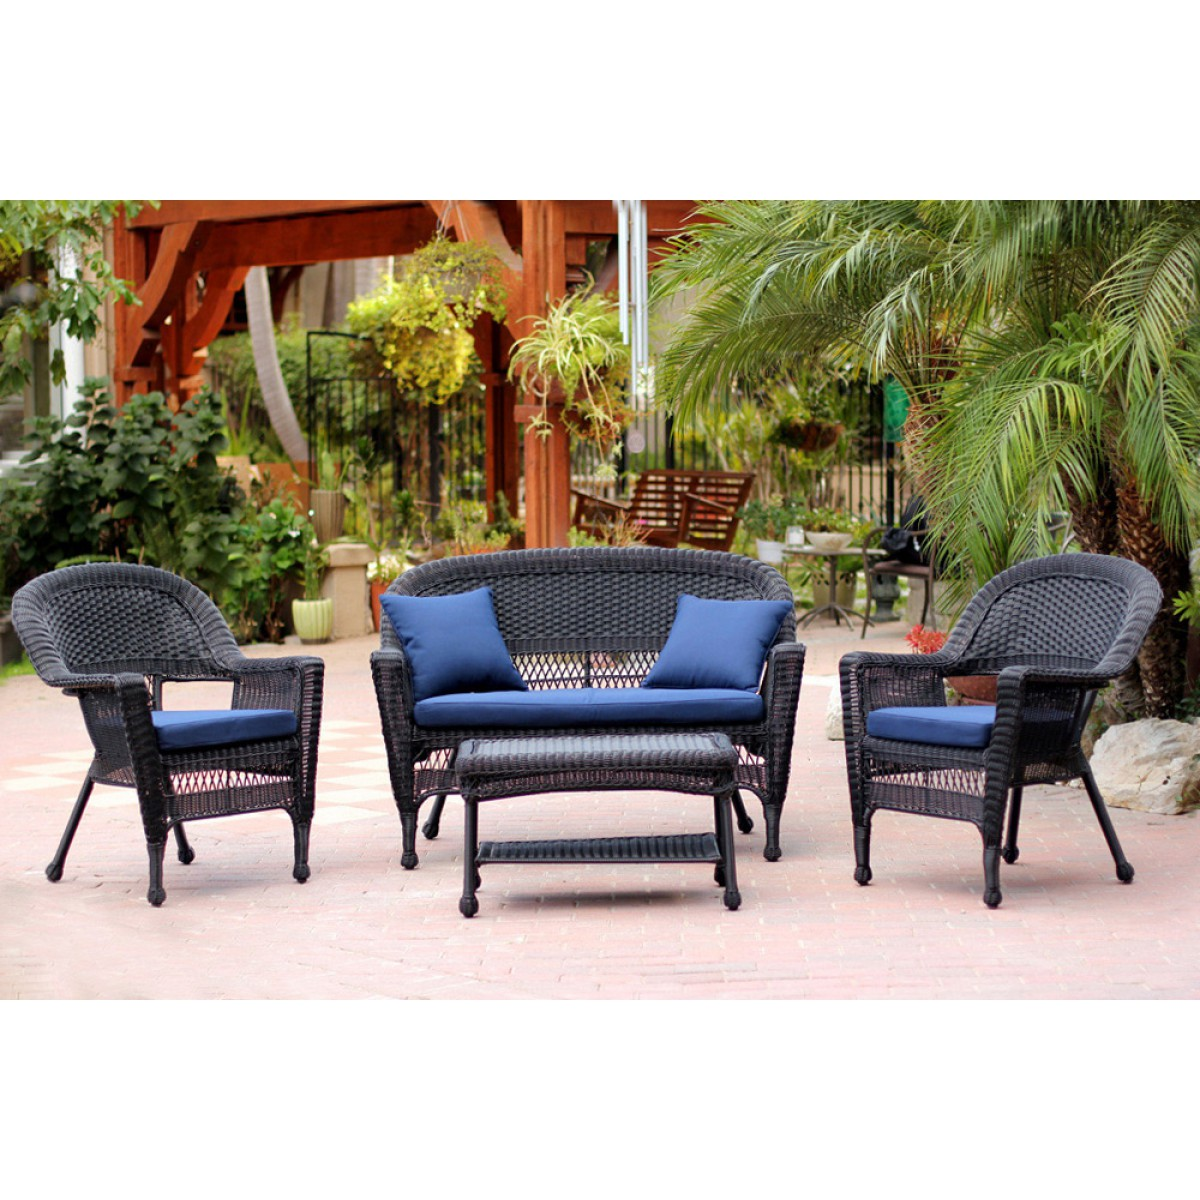 4pc Black Wicker Conversation Set Navy Blue Cushions